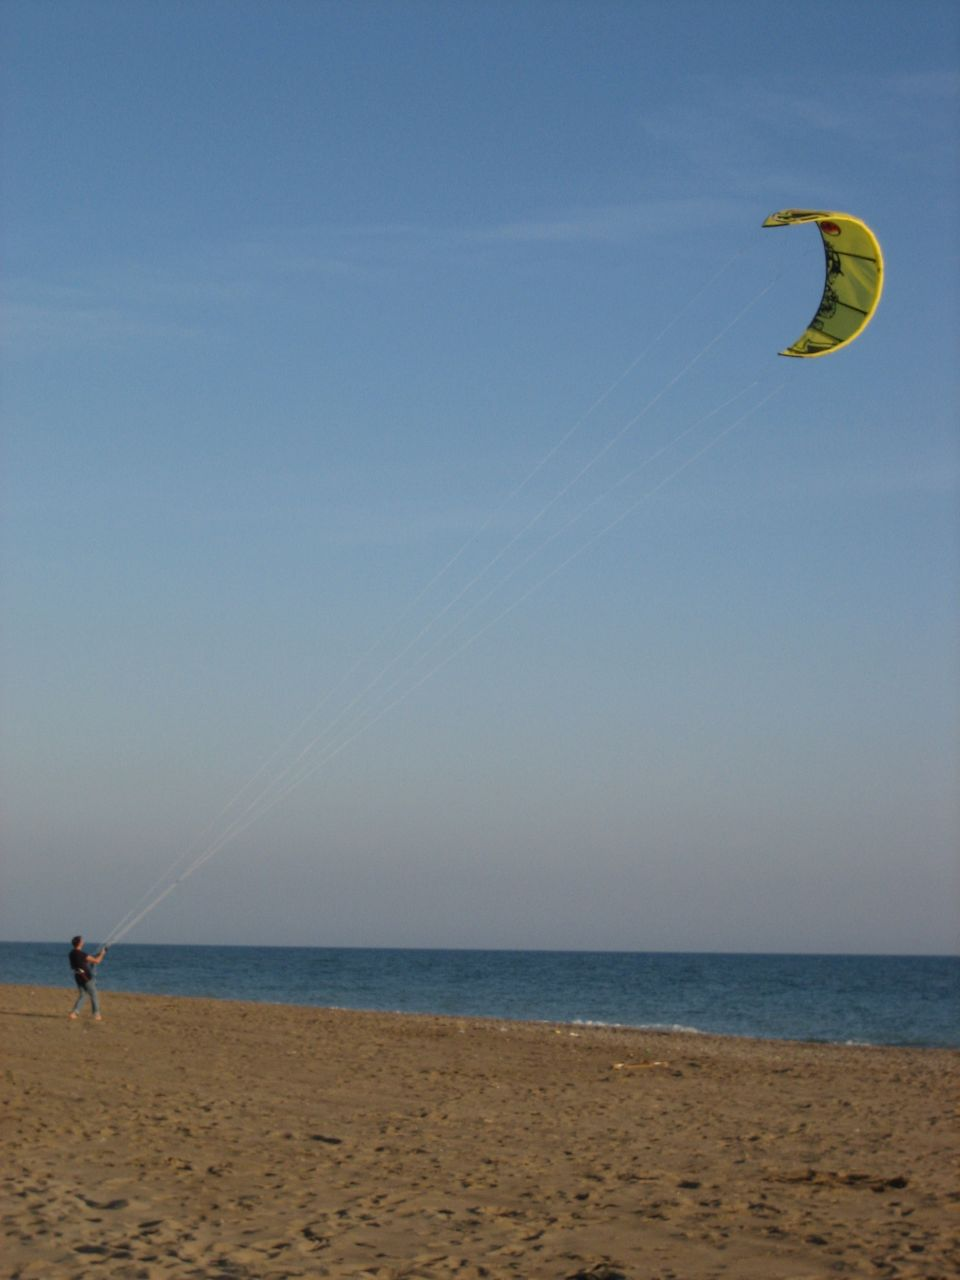 Kite surf practising on the beach